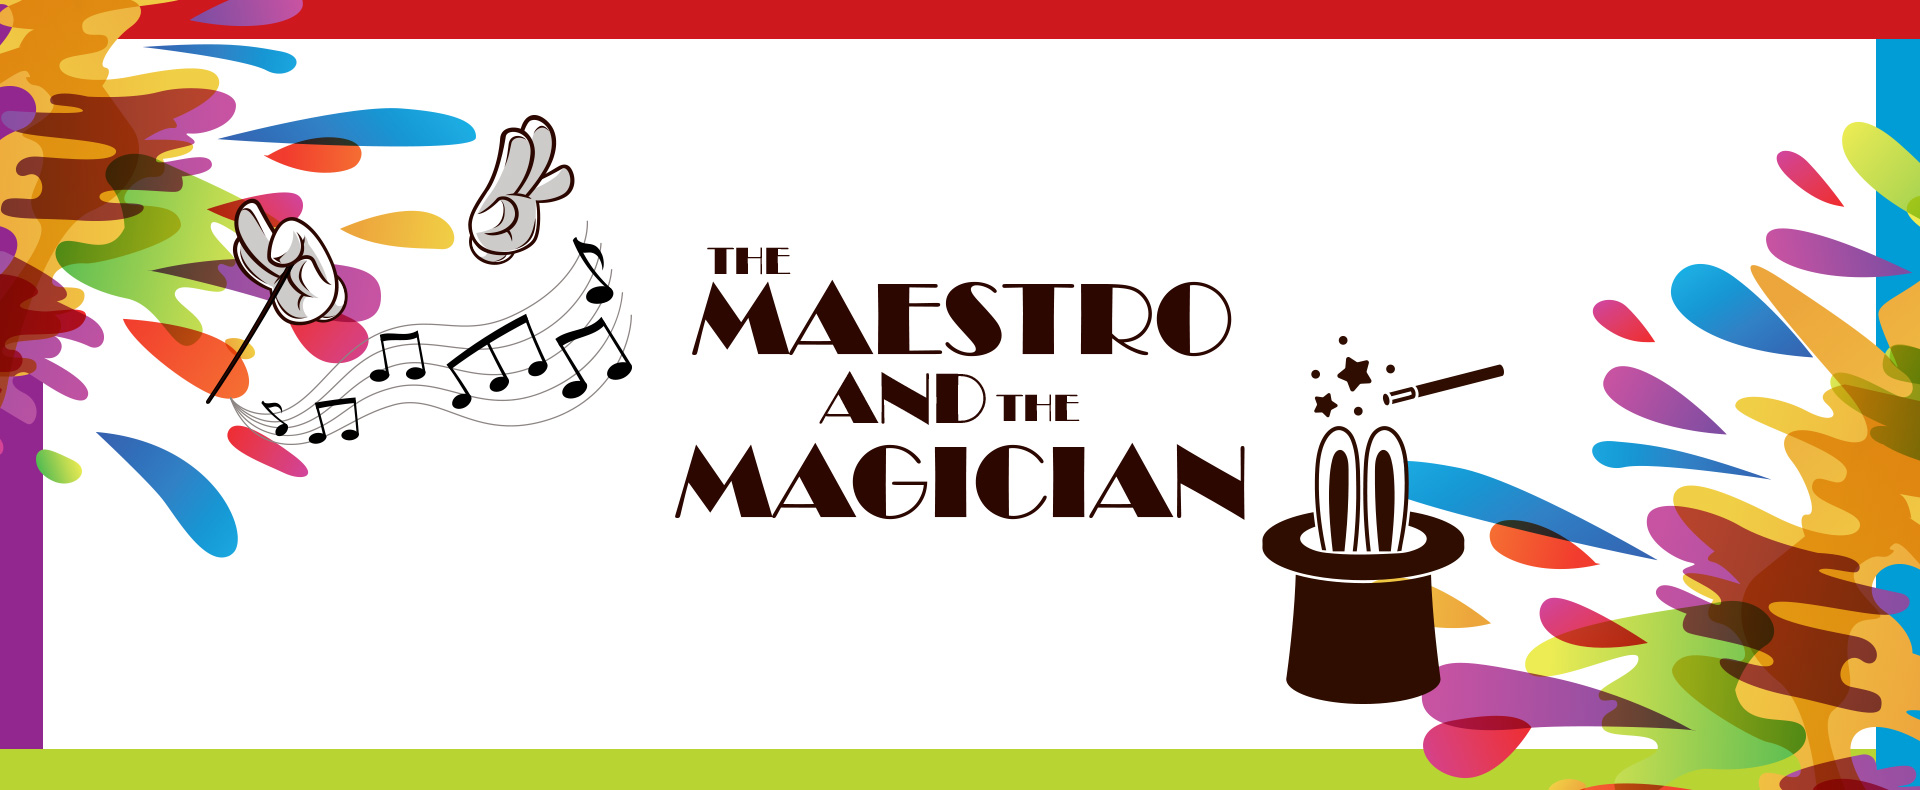 The Maestro And The Magician [Penrith, NSW]